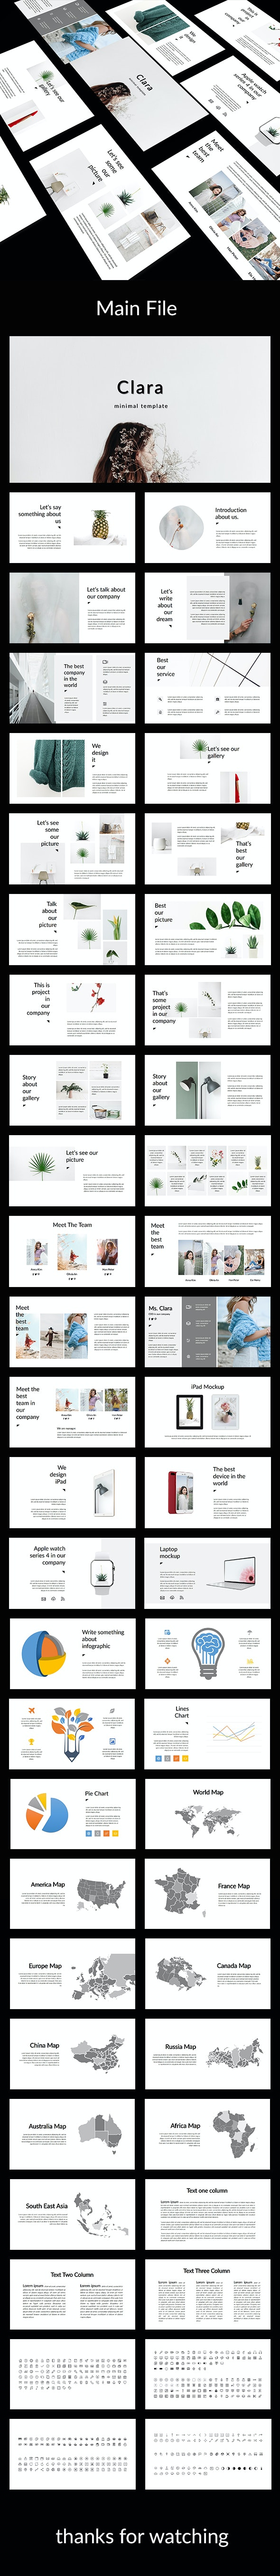 Clara - Creative Google Slides Template - Google Slides Presentation Templates